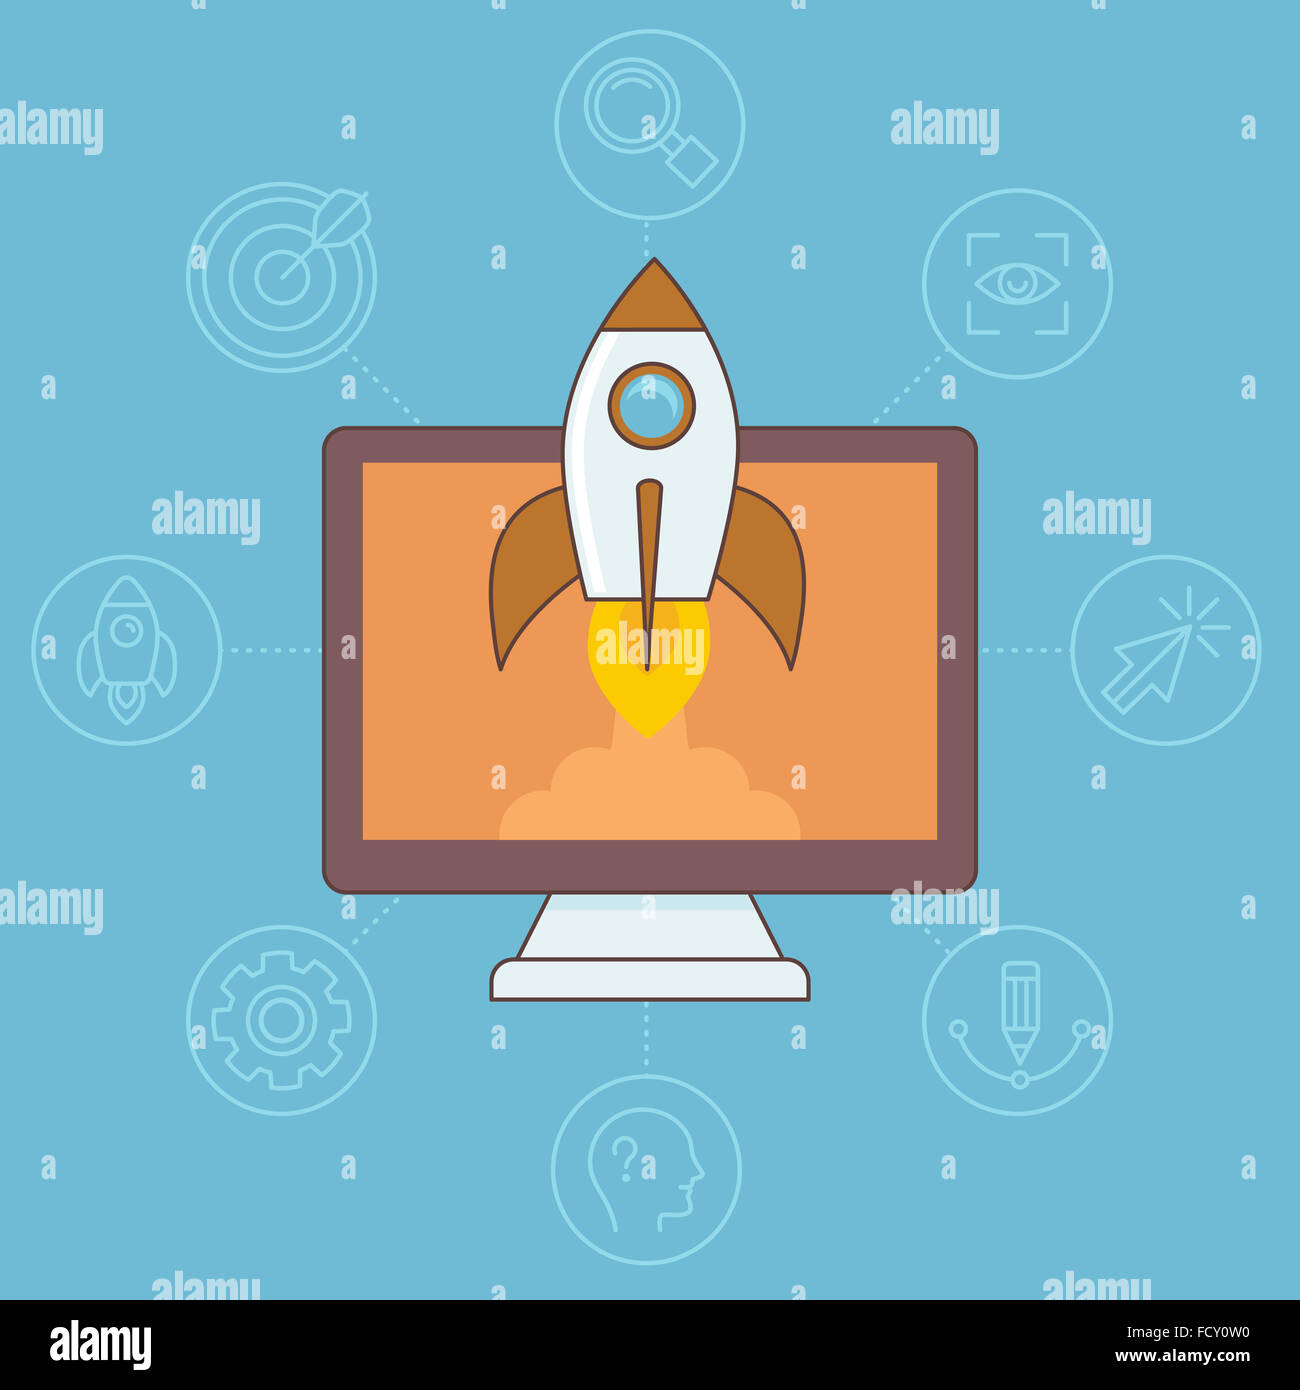 Start up concept in flat linear style - space ship and computer - Stock Image